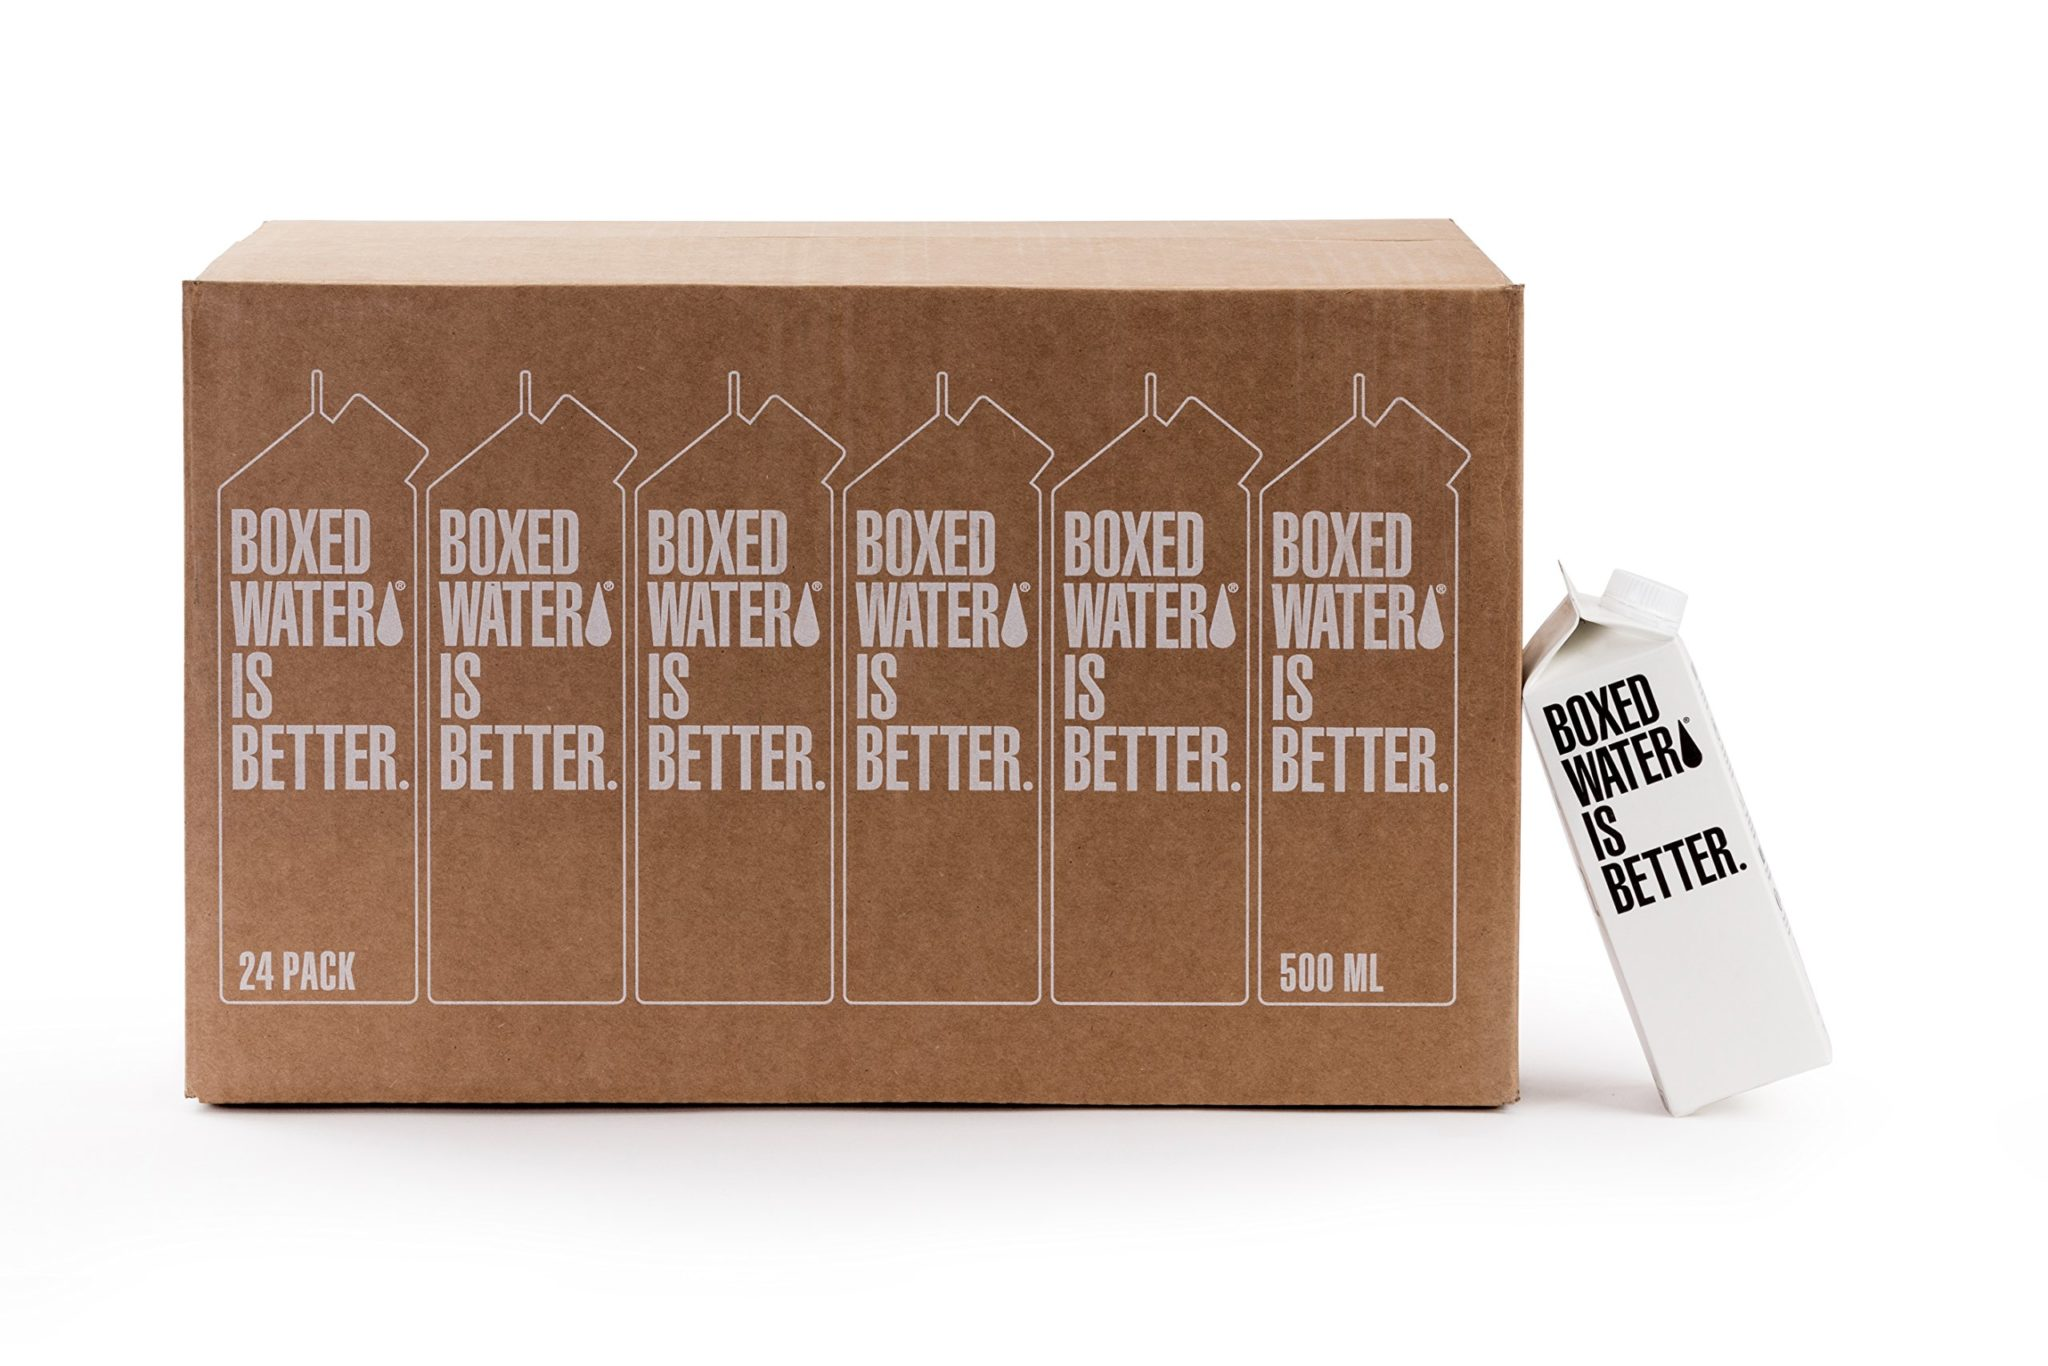 Boxed Water Is Better 24/16oz Cardboard Cartons